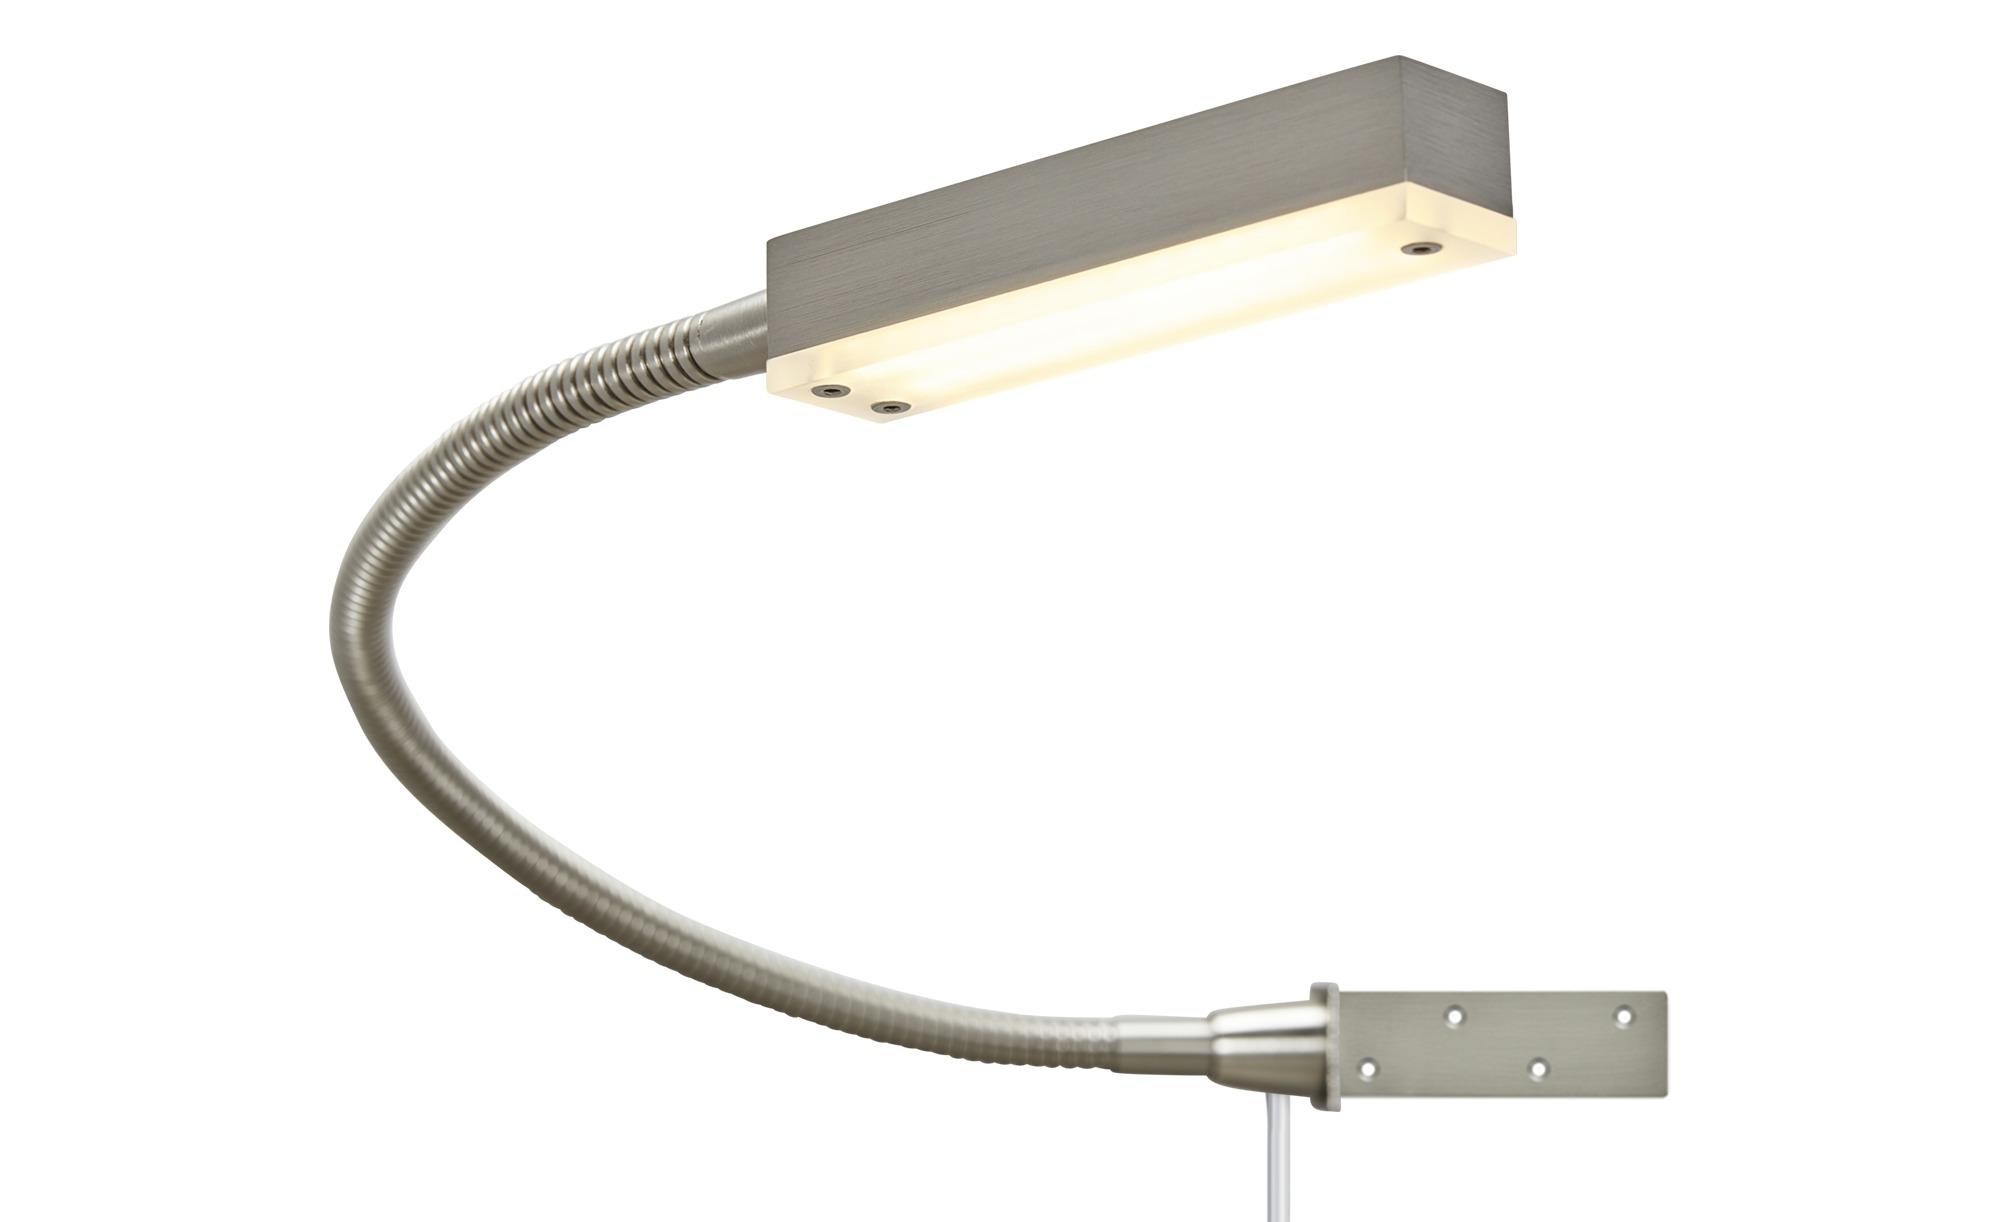 Bettleuchte Led Fischer-honsel Led-bettleuchte, 1-flammig, Nickel Matt